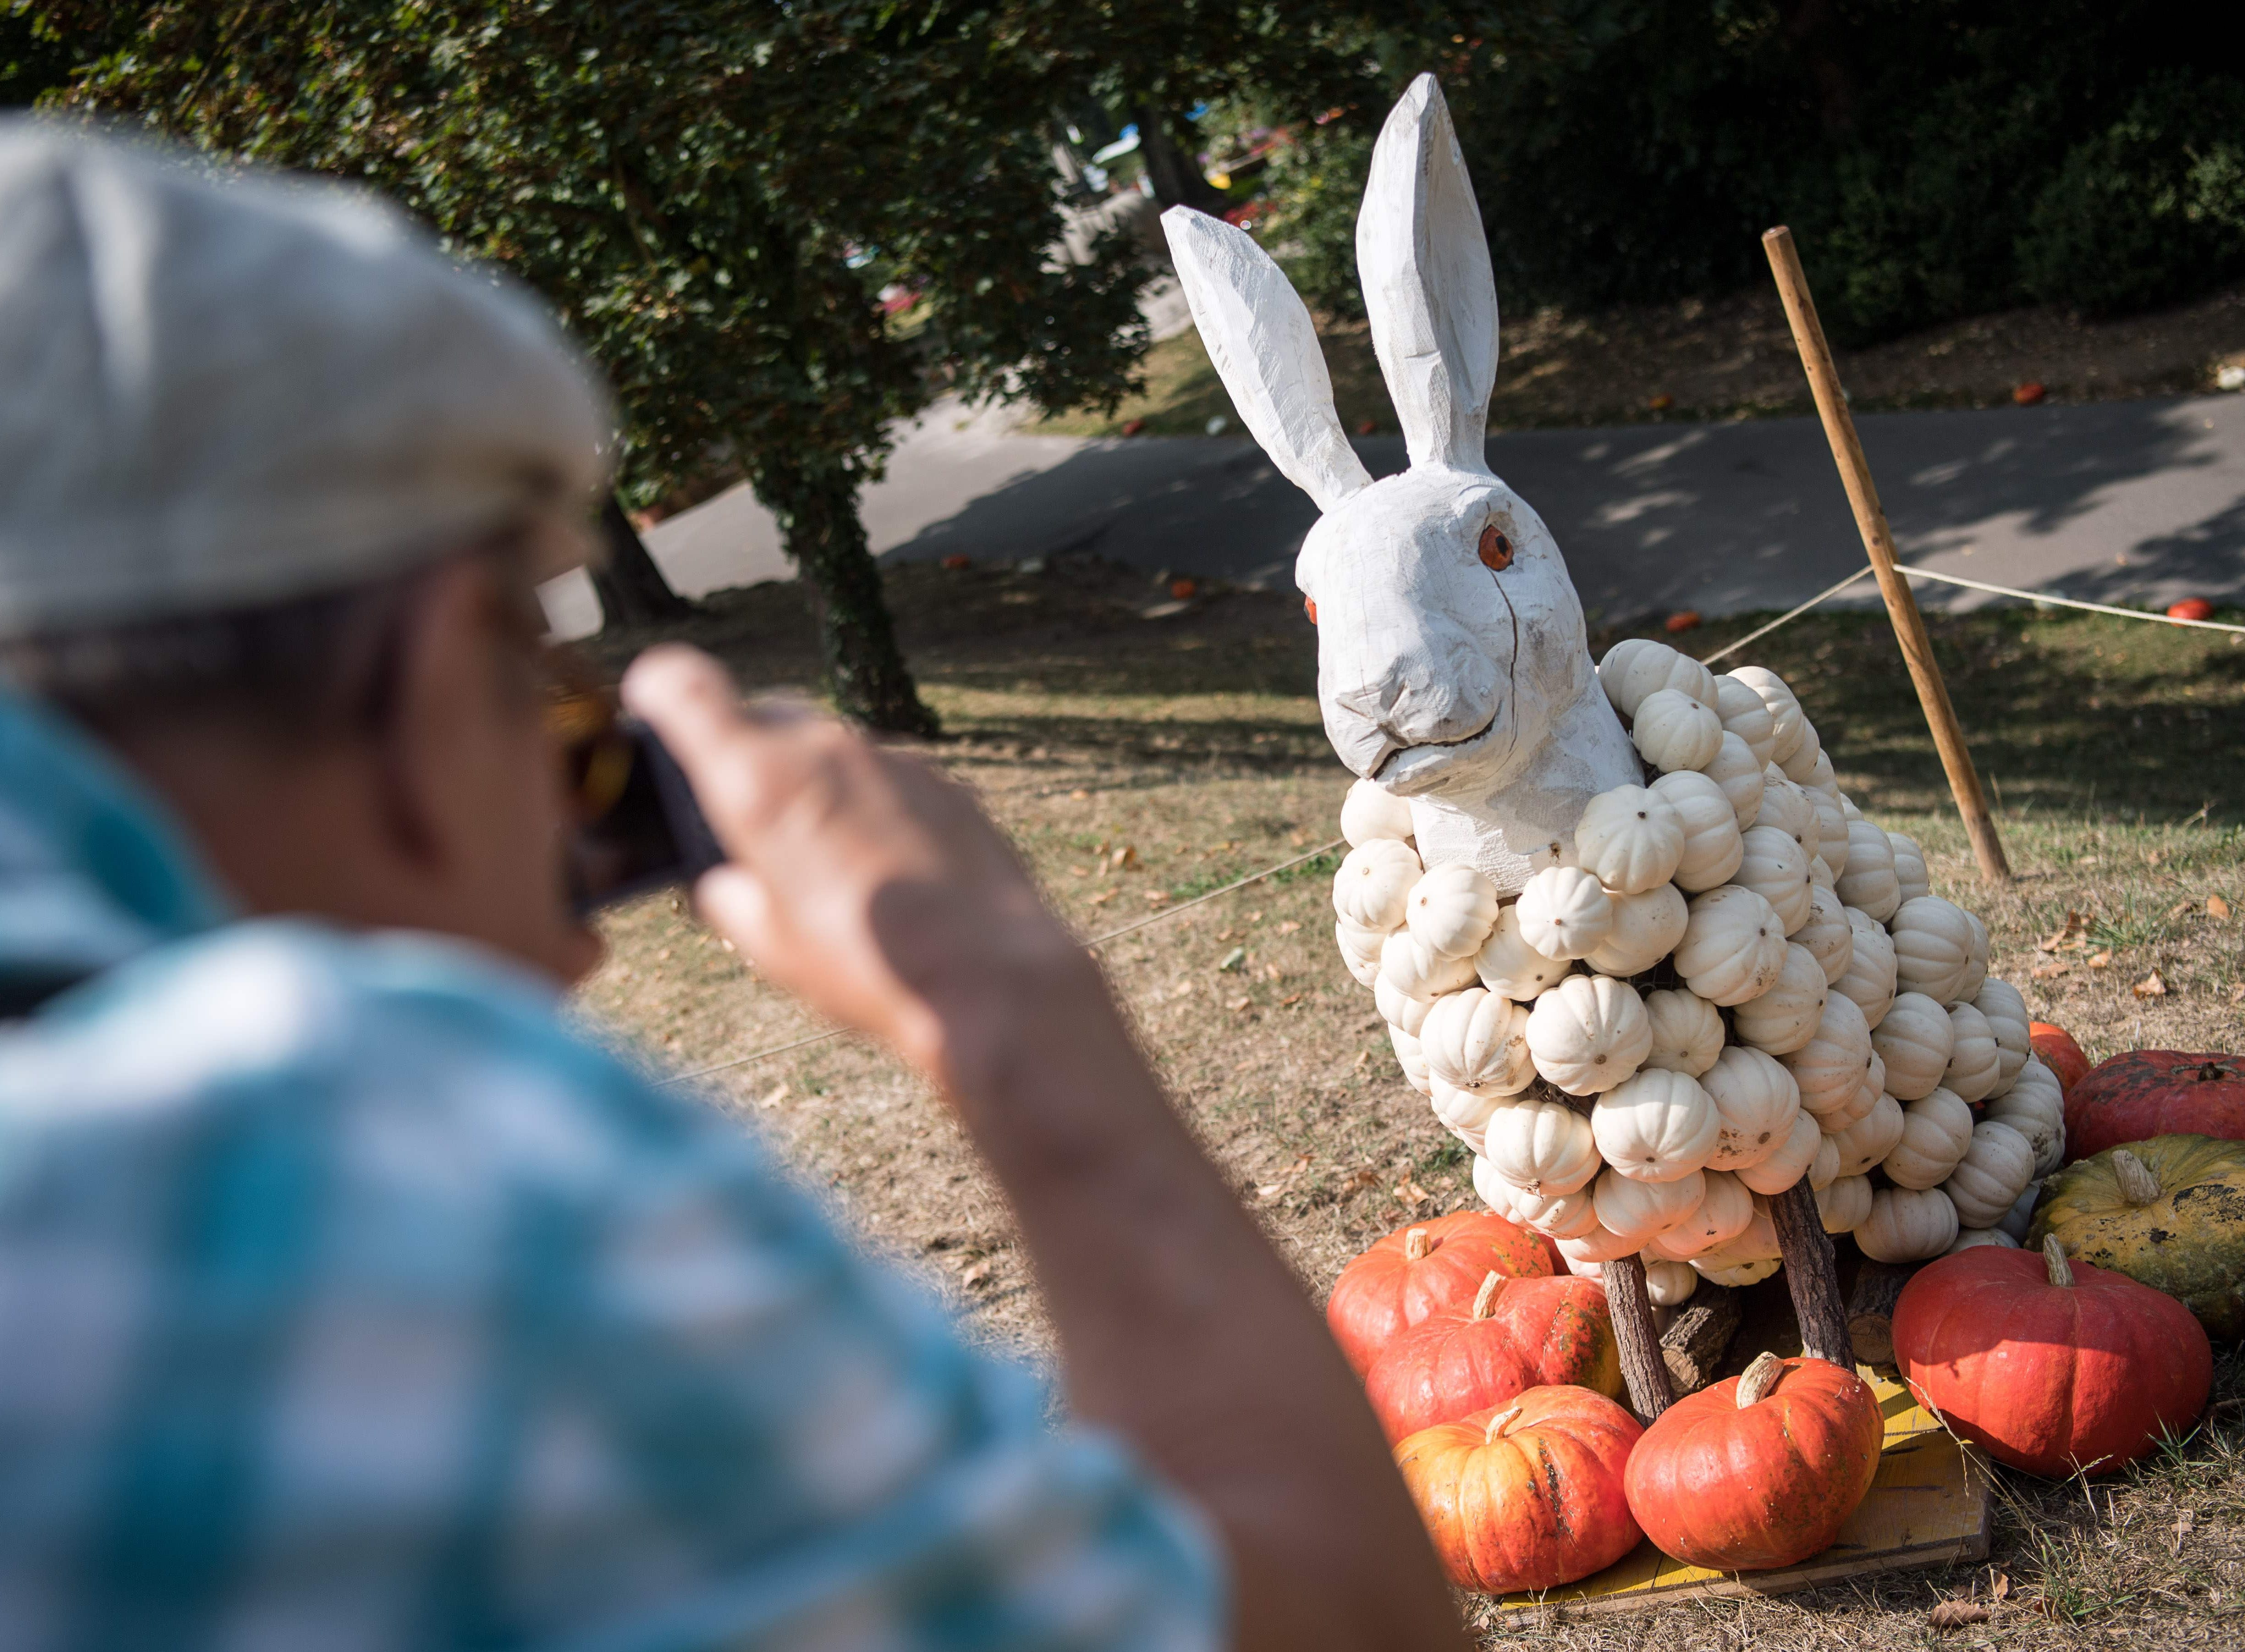 The Ludwigsburg exhibit also featured a pumpkin rabbit.